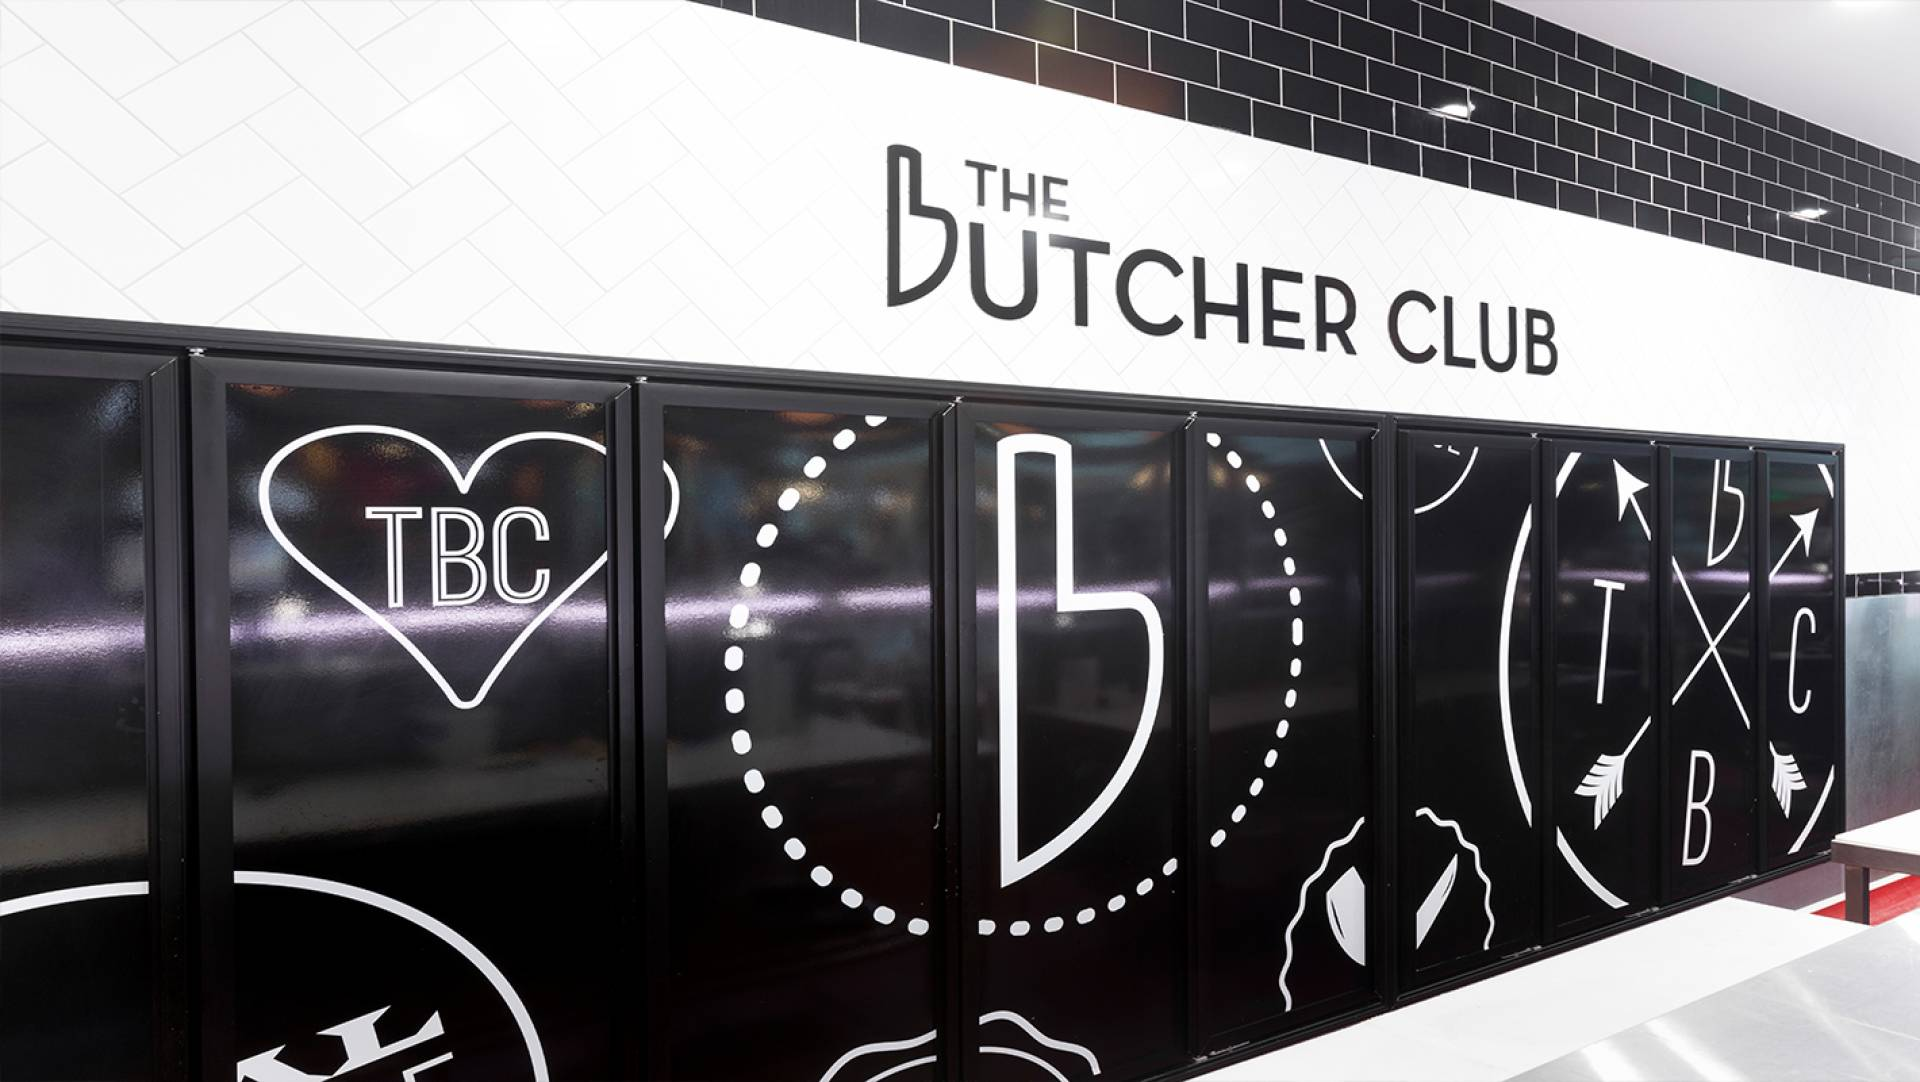 Butcher Store Designer Melbourne - The Butcher Club